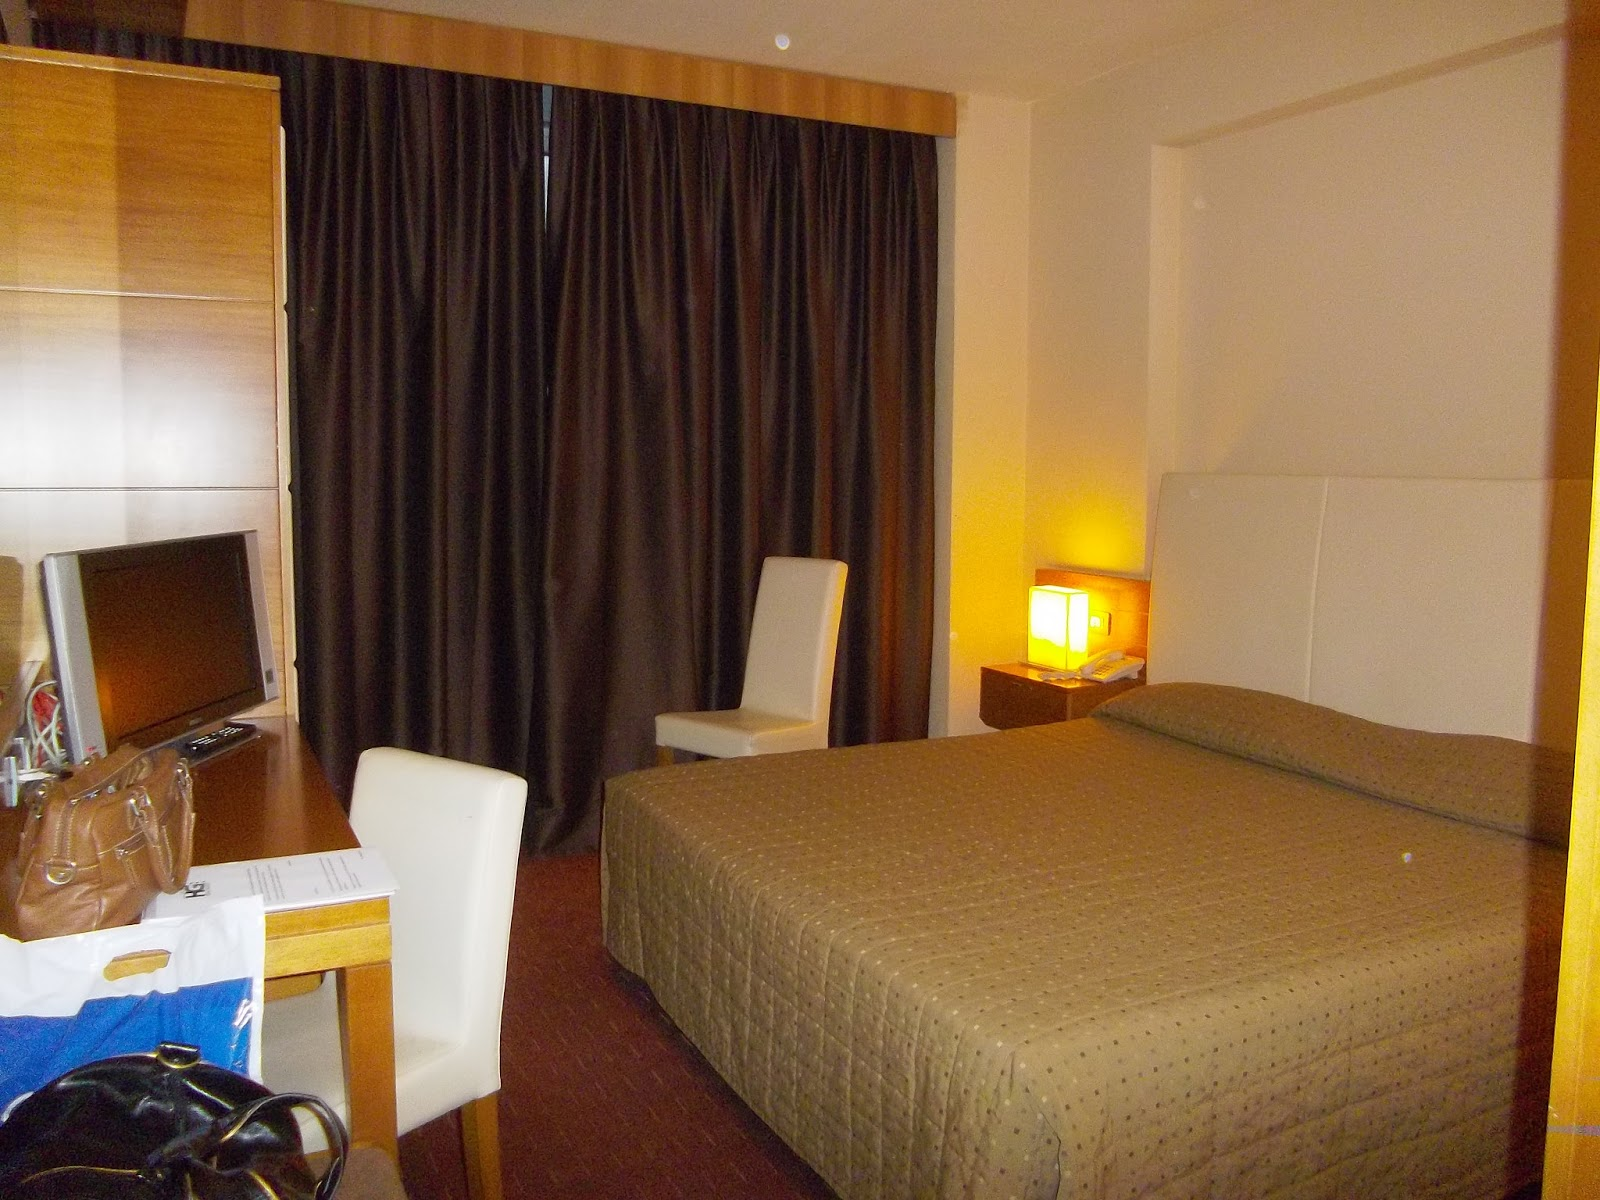 Hotel review hotel galilei pisa italy life in luxembourg for Galilei hotel pisa